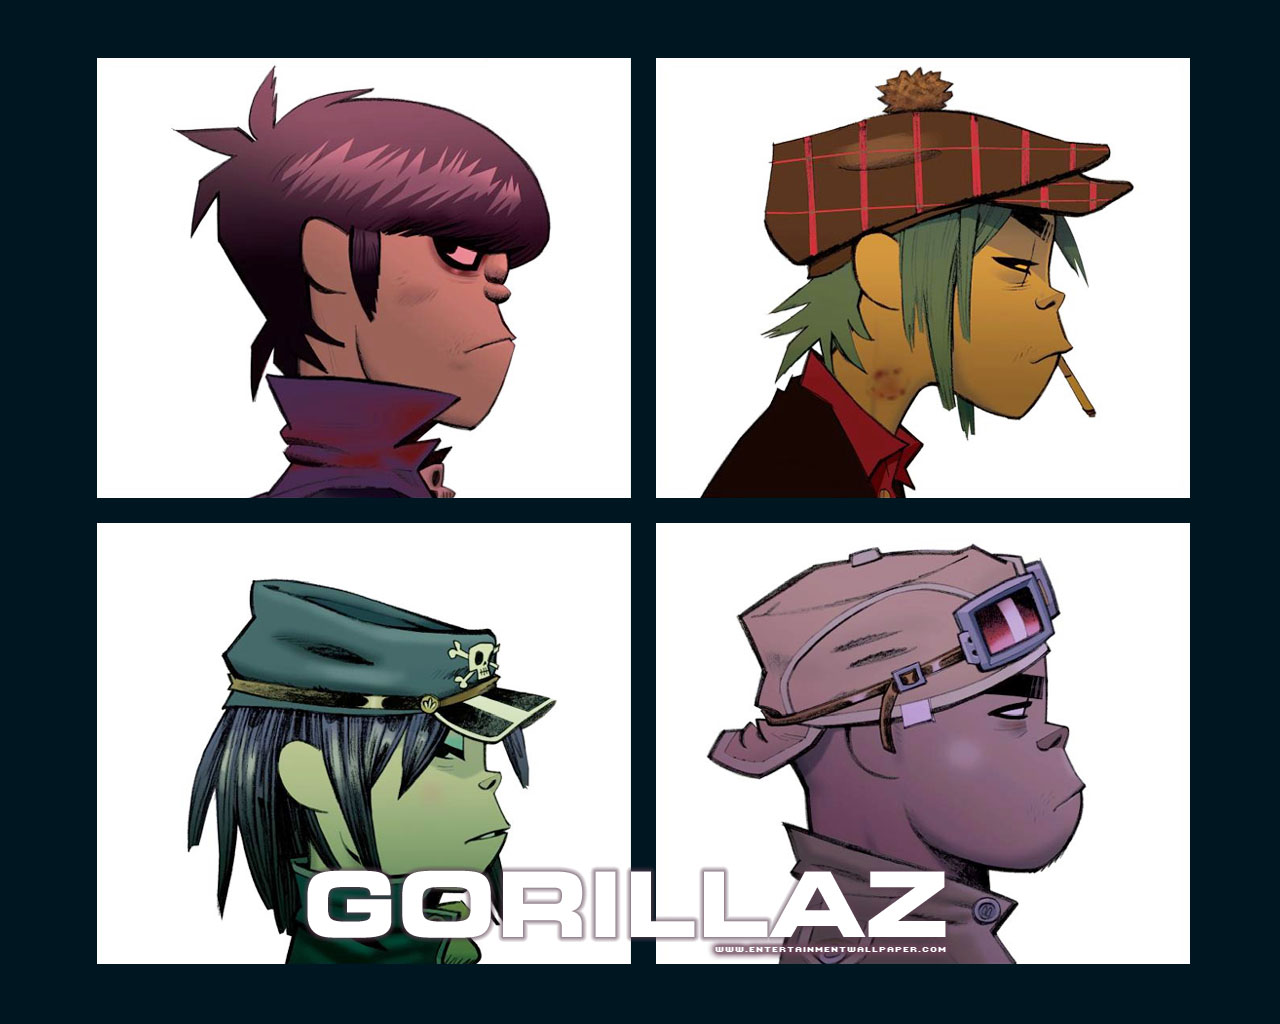 Gorillaz Images Gorillaz Hd Wallpaper And Background Photos 875502